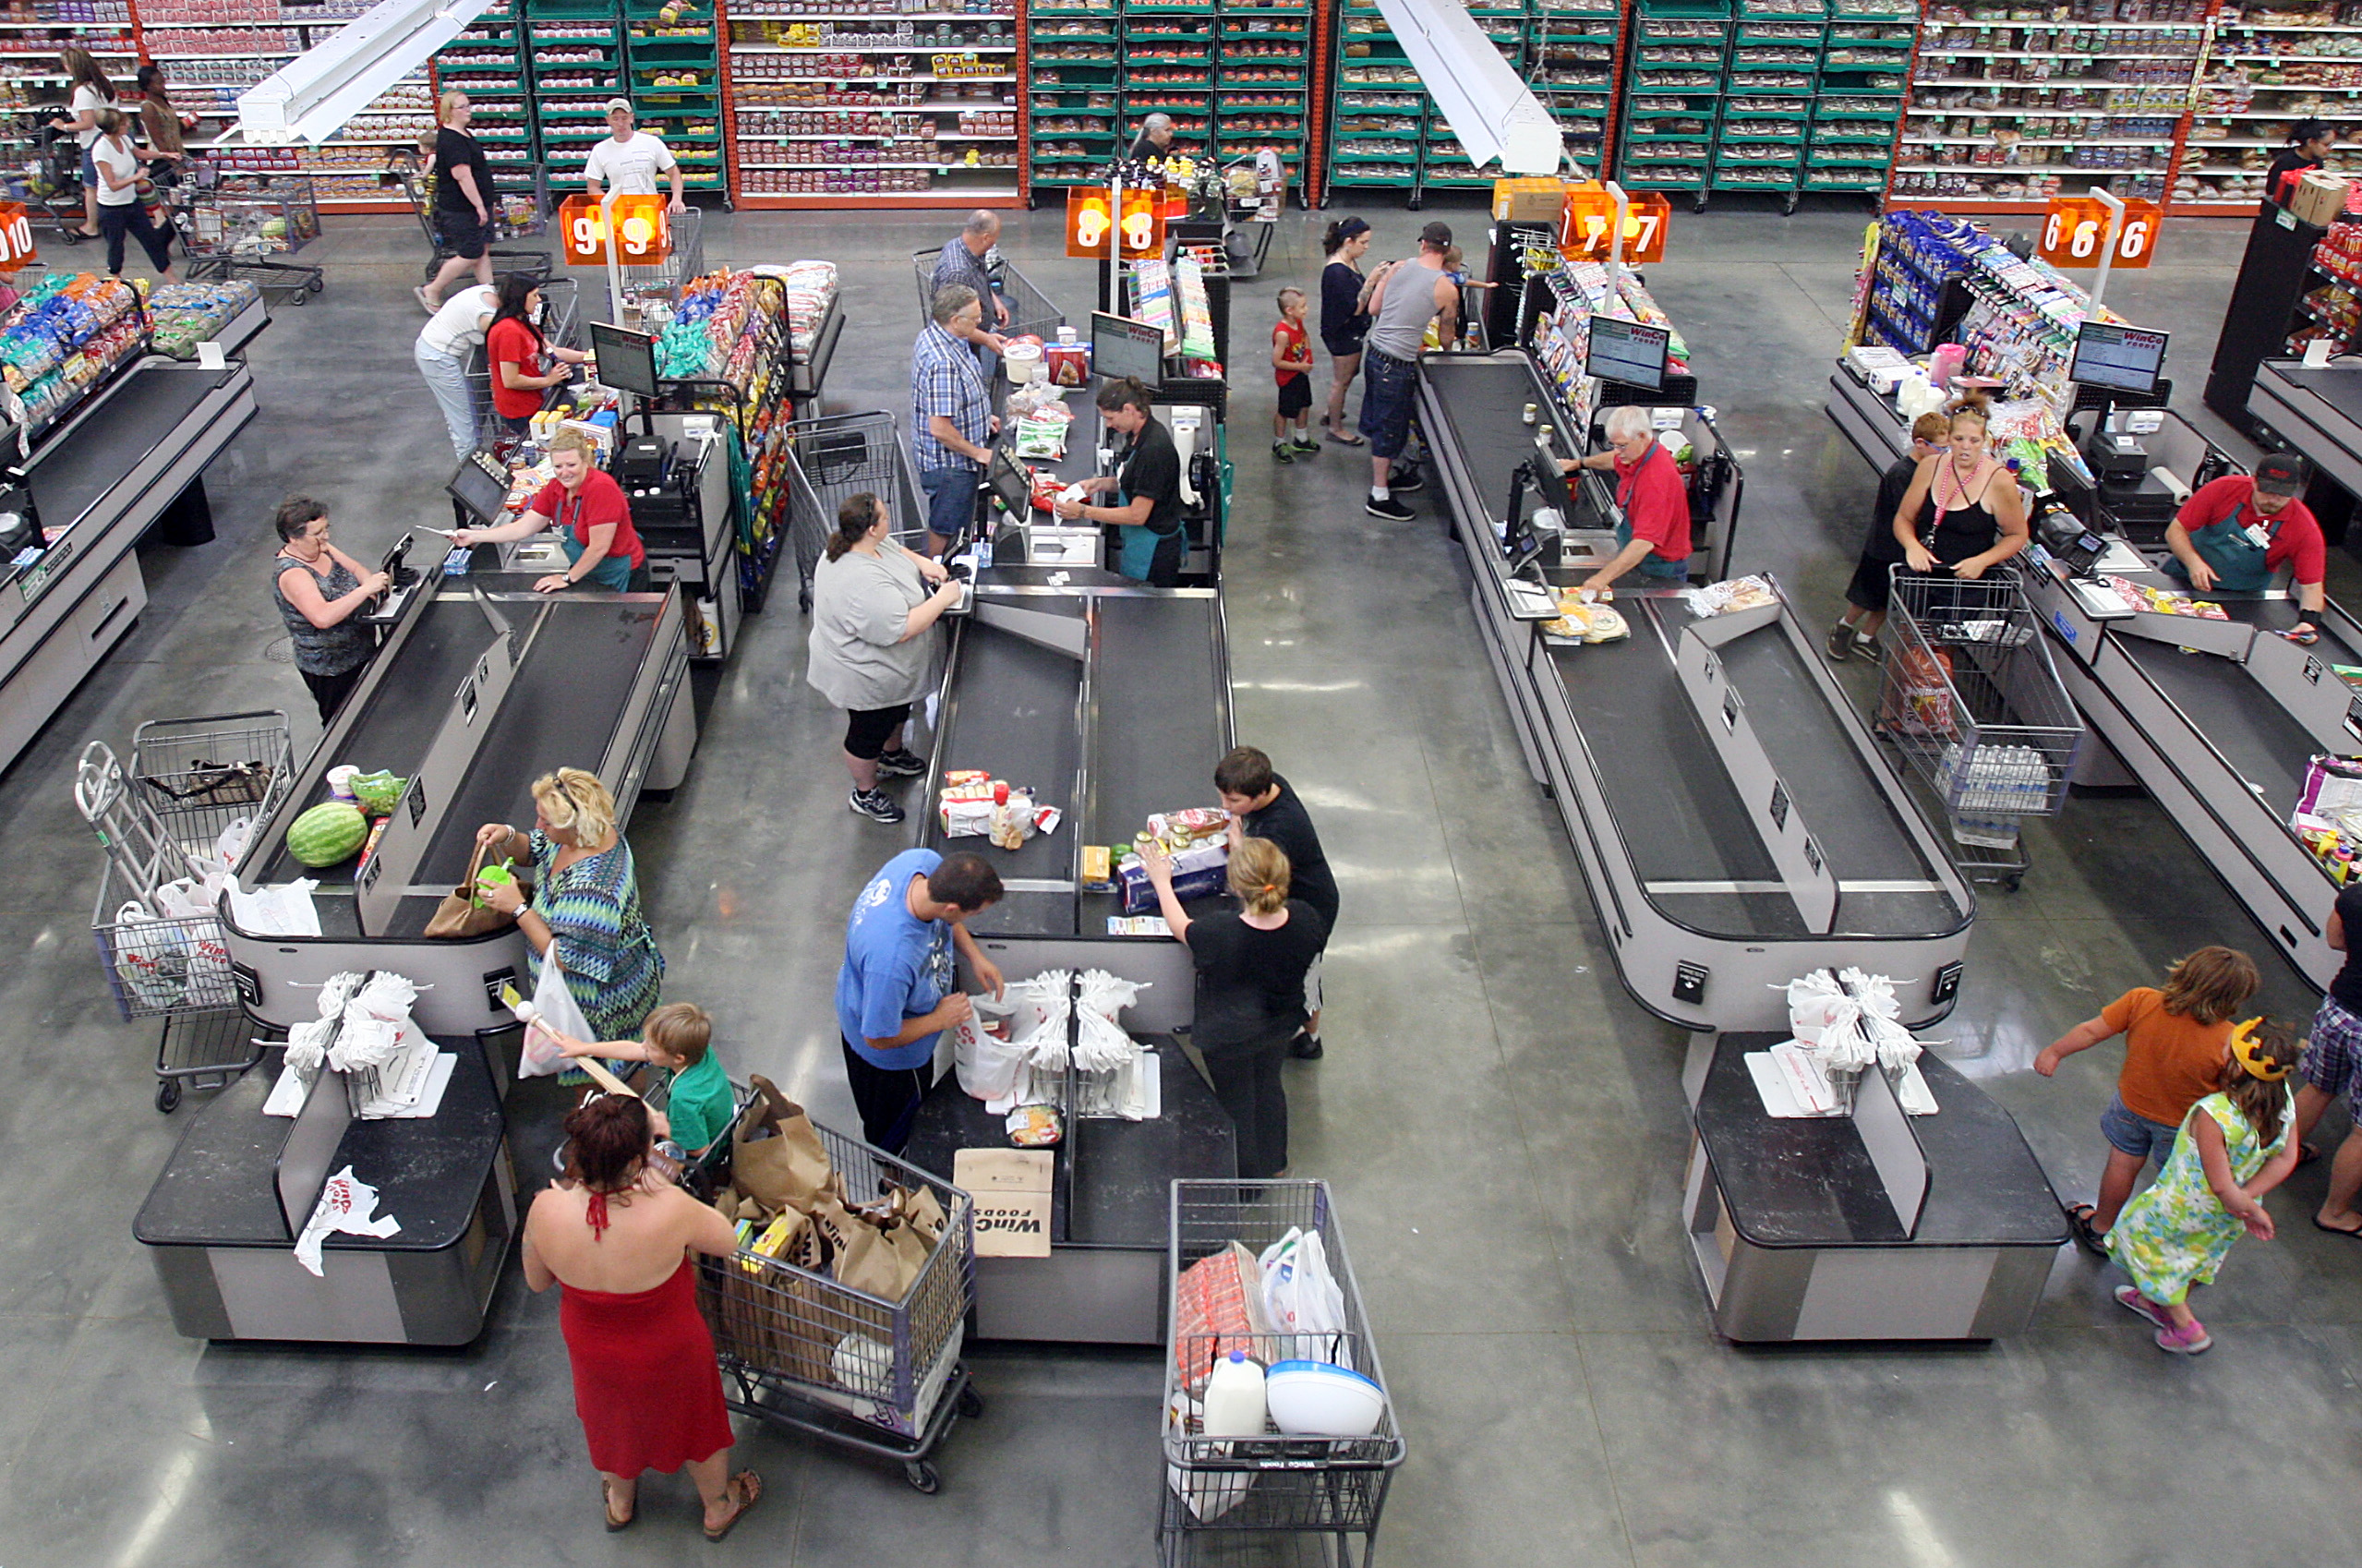 Customers bag their own groceries at checkout counters at WinCo Foods on Fairview Avenue in Boise, Idaho, on July 1, 2013